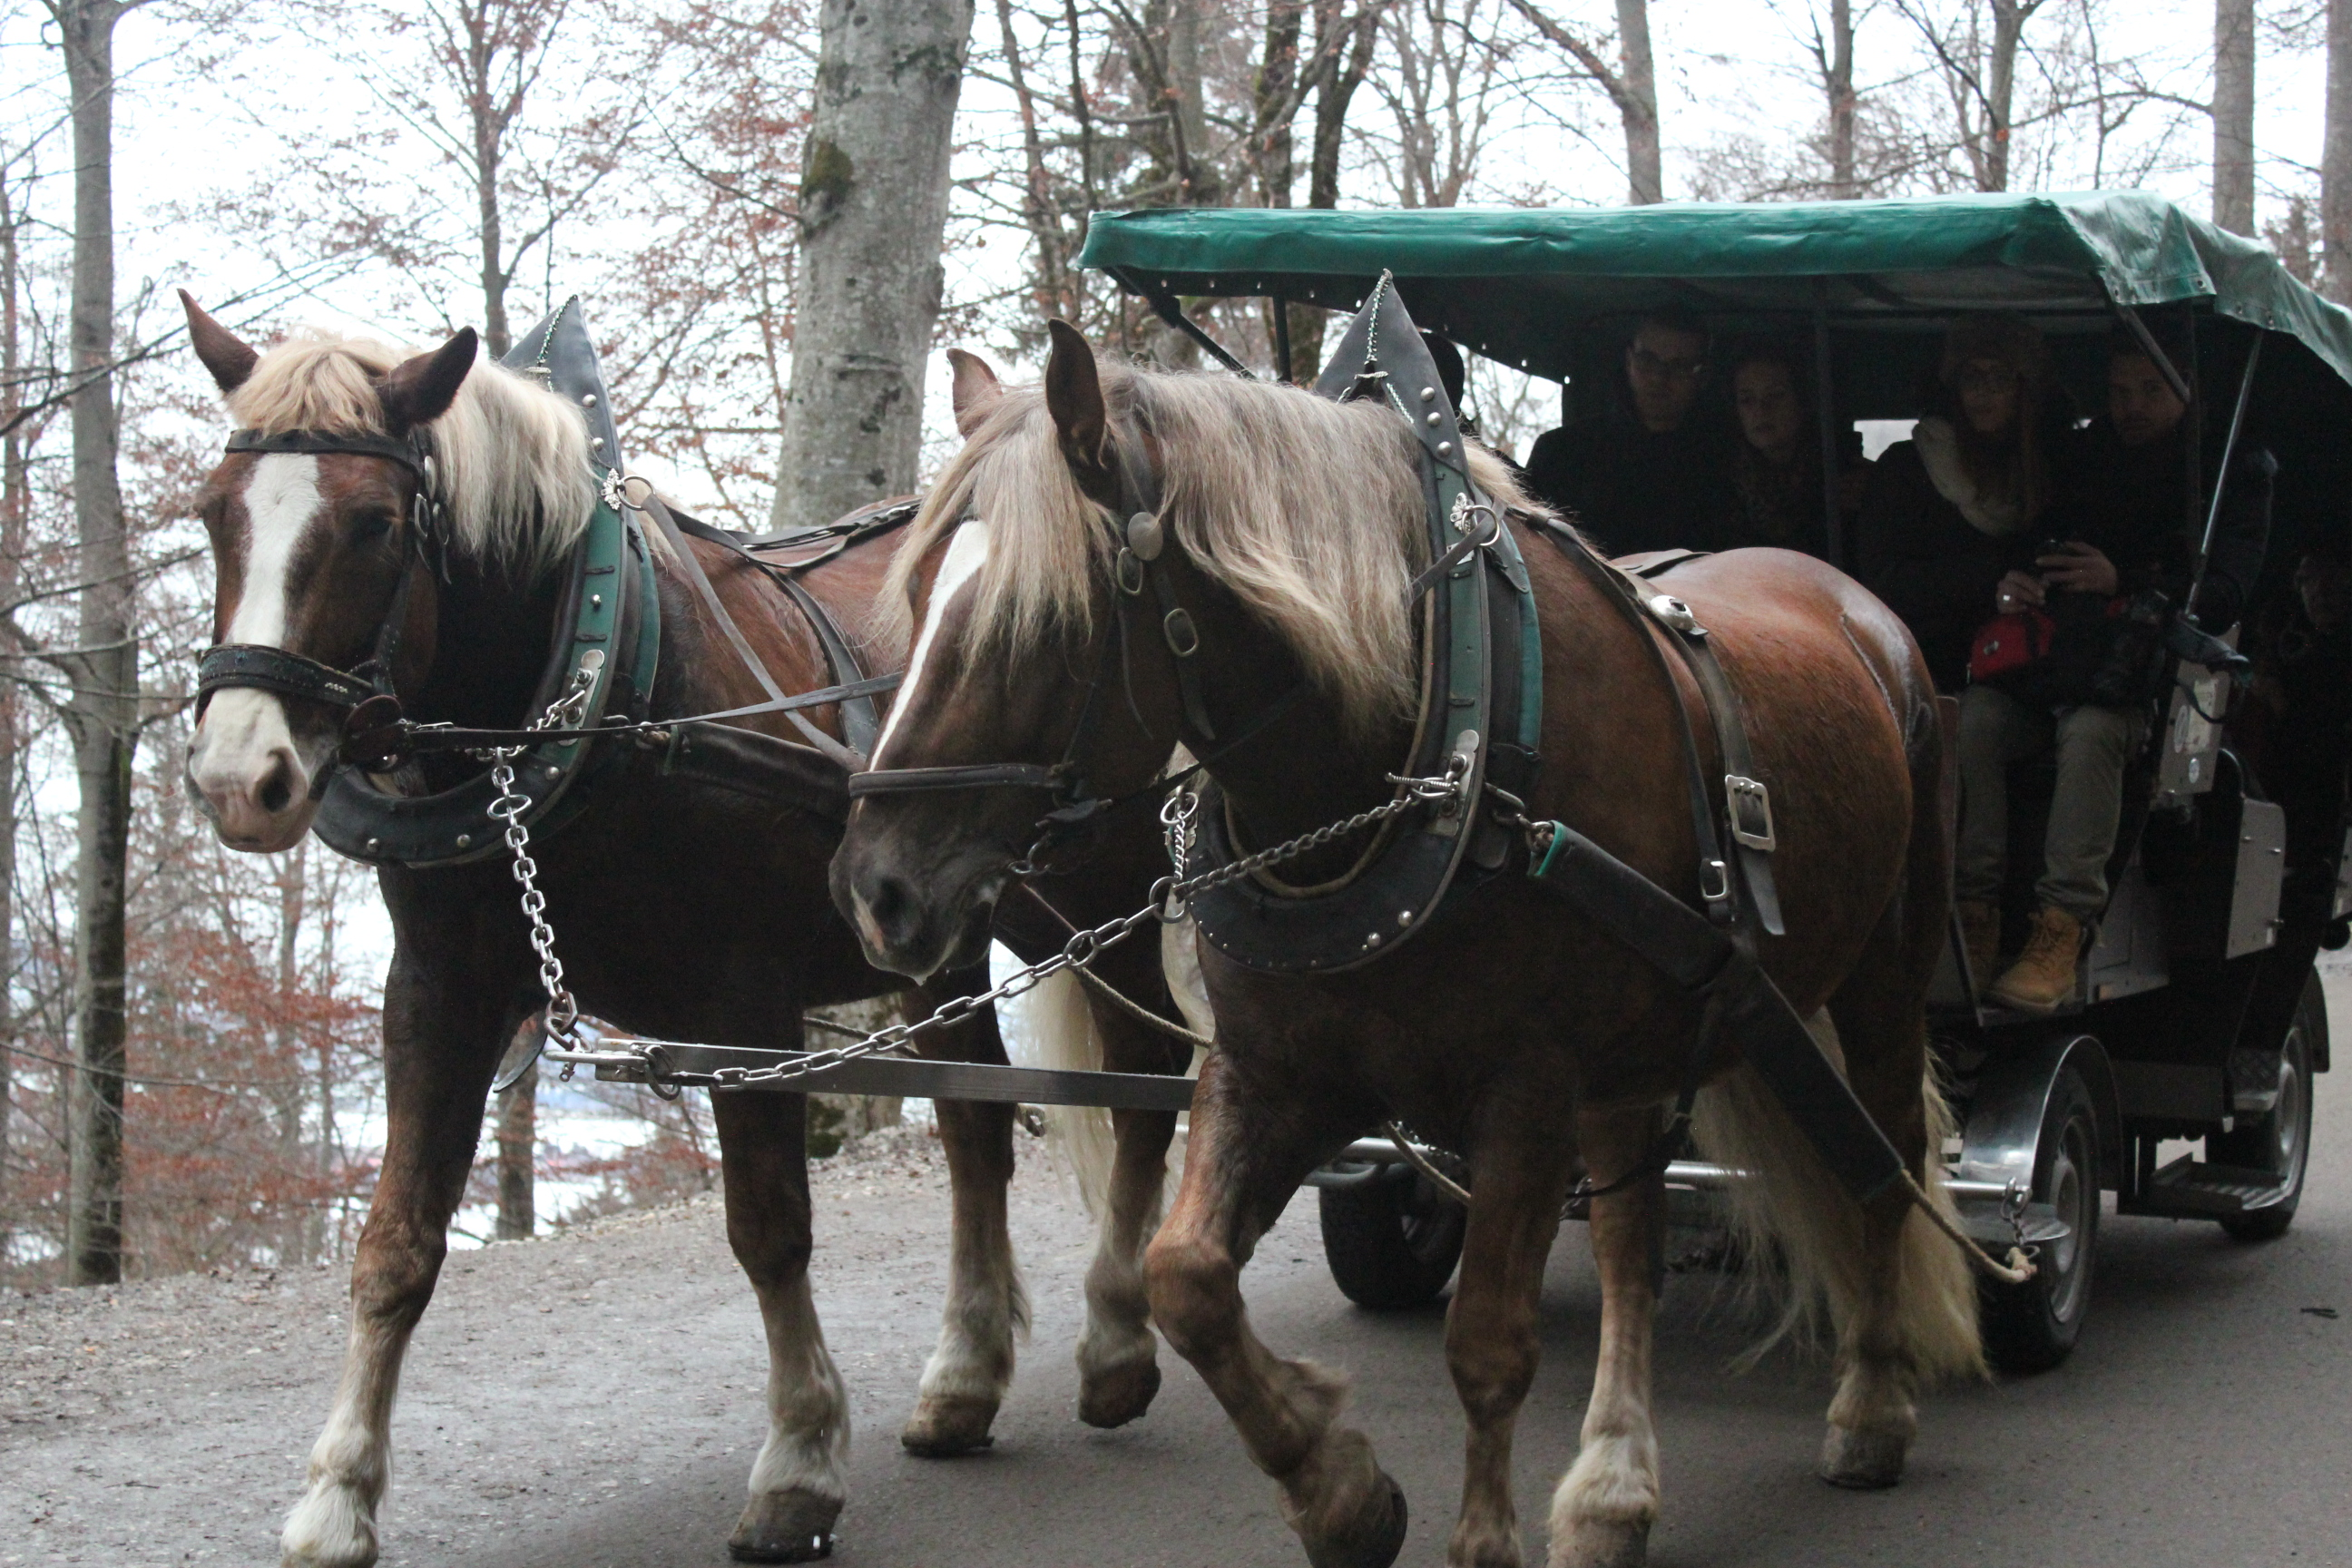 Horse Carriage to Neuschwanstein Castle; Schwangau Village, Germany; 2012